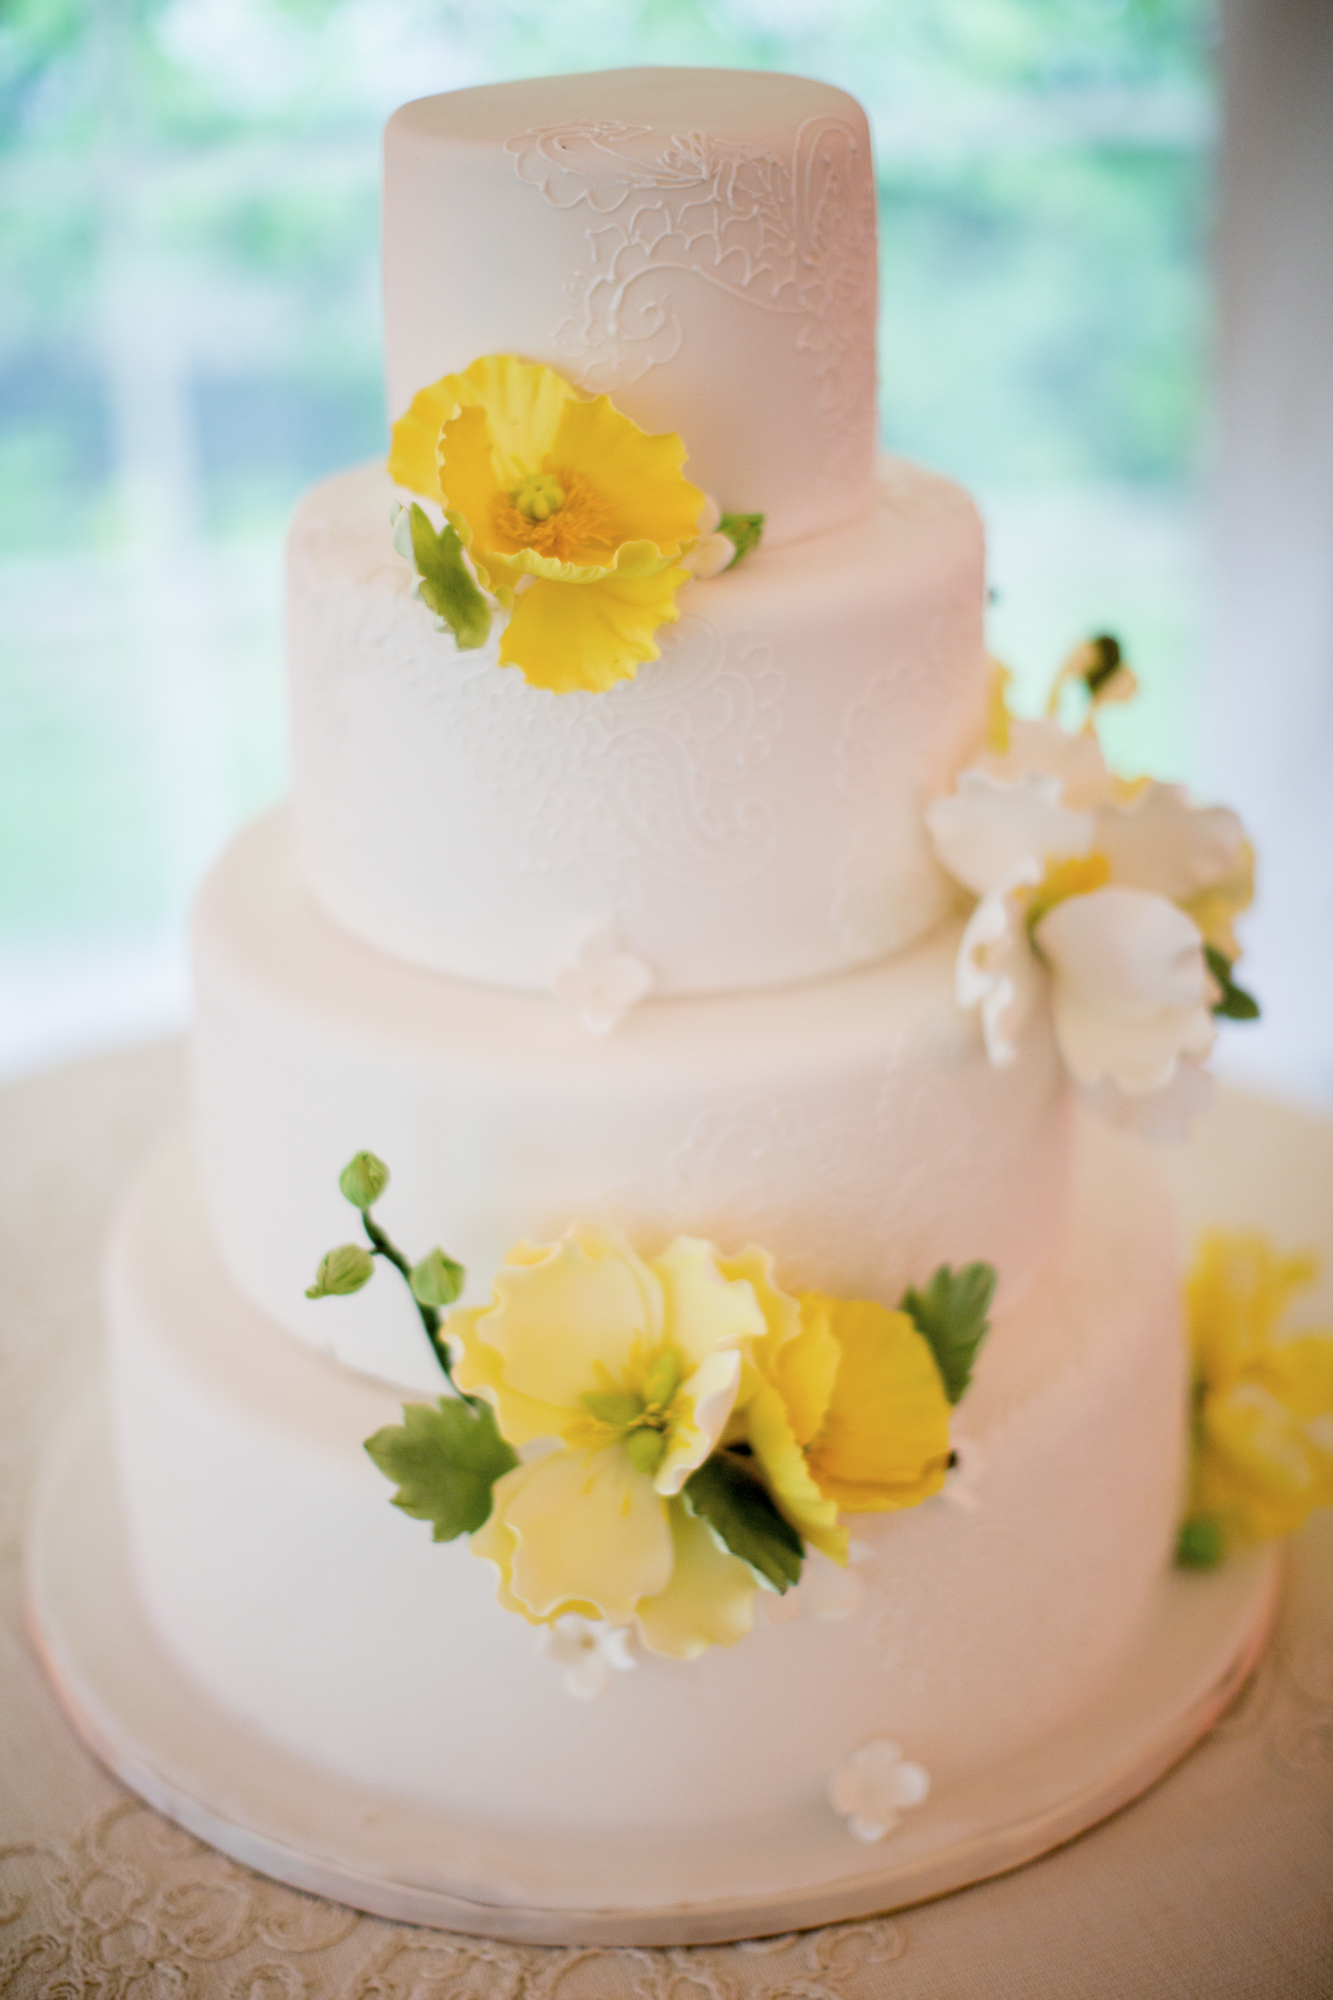 Yellow sugar flowers on cake